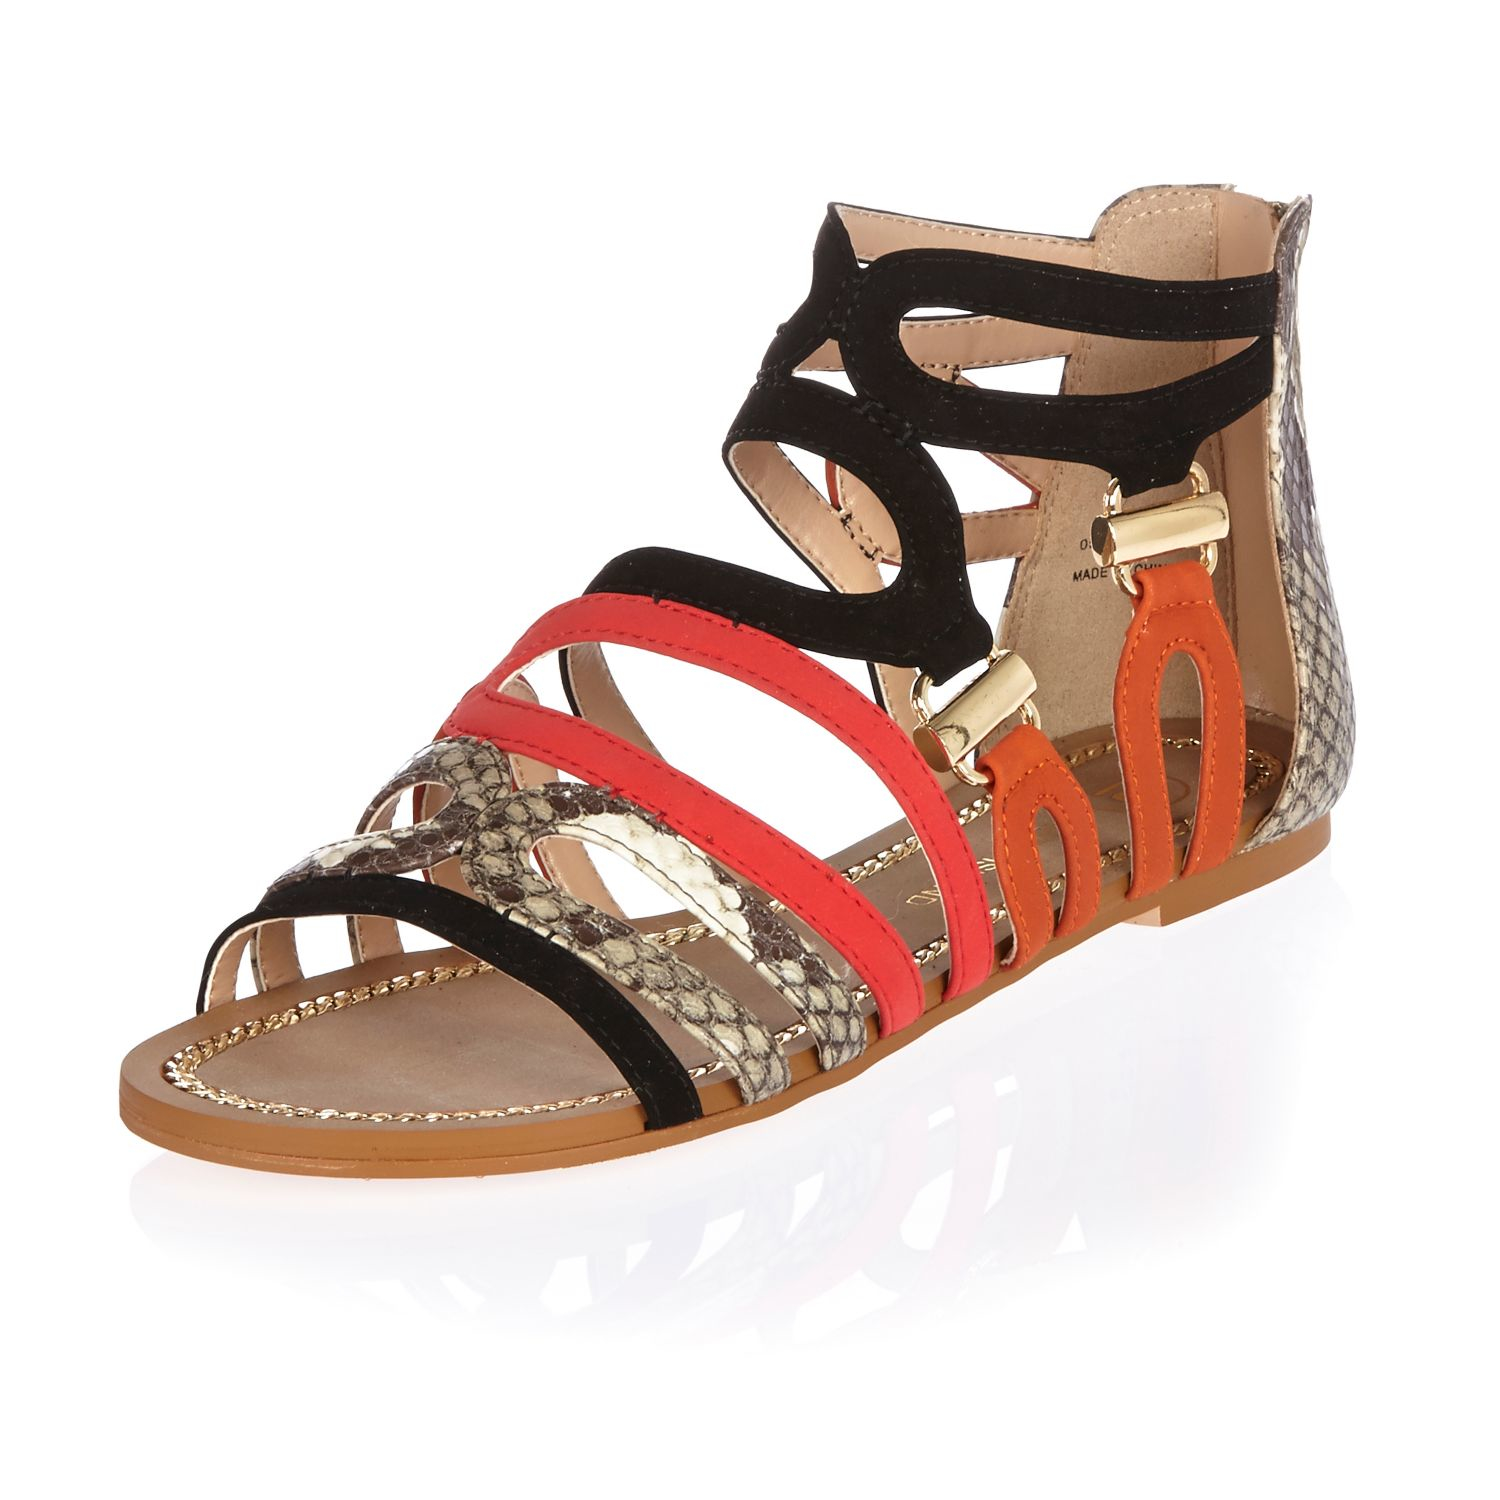 f220ce96d16 Lyst - River Island Black And Snakeskin Print Flat Sandals in Black